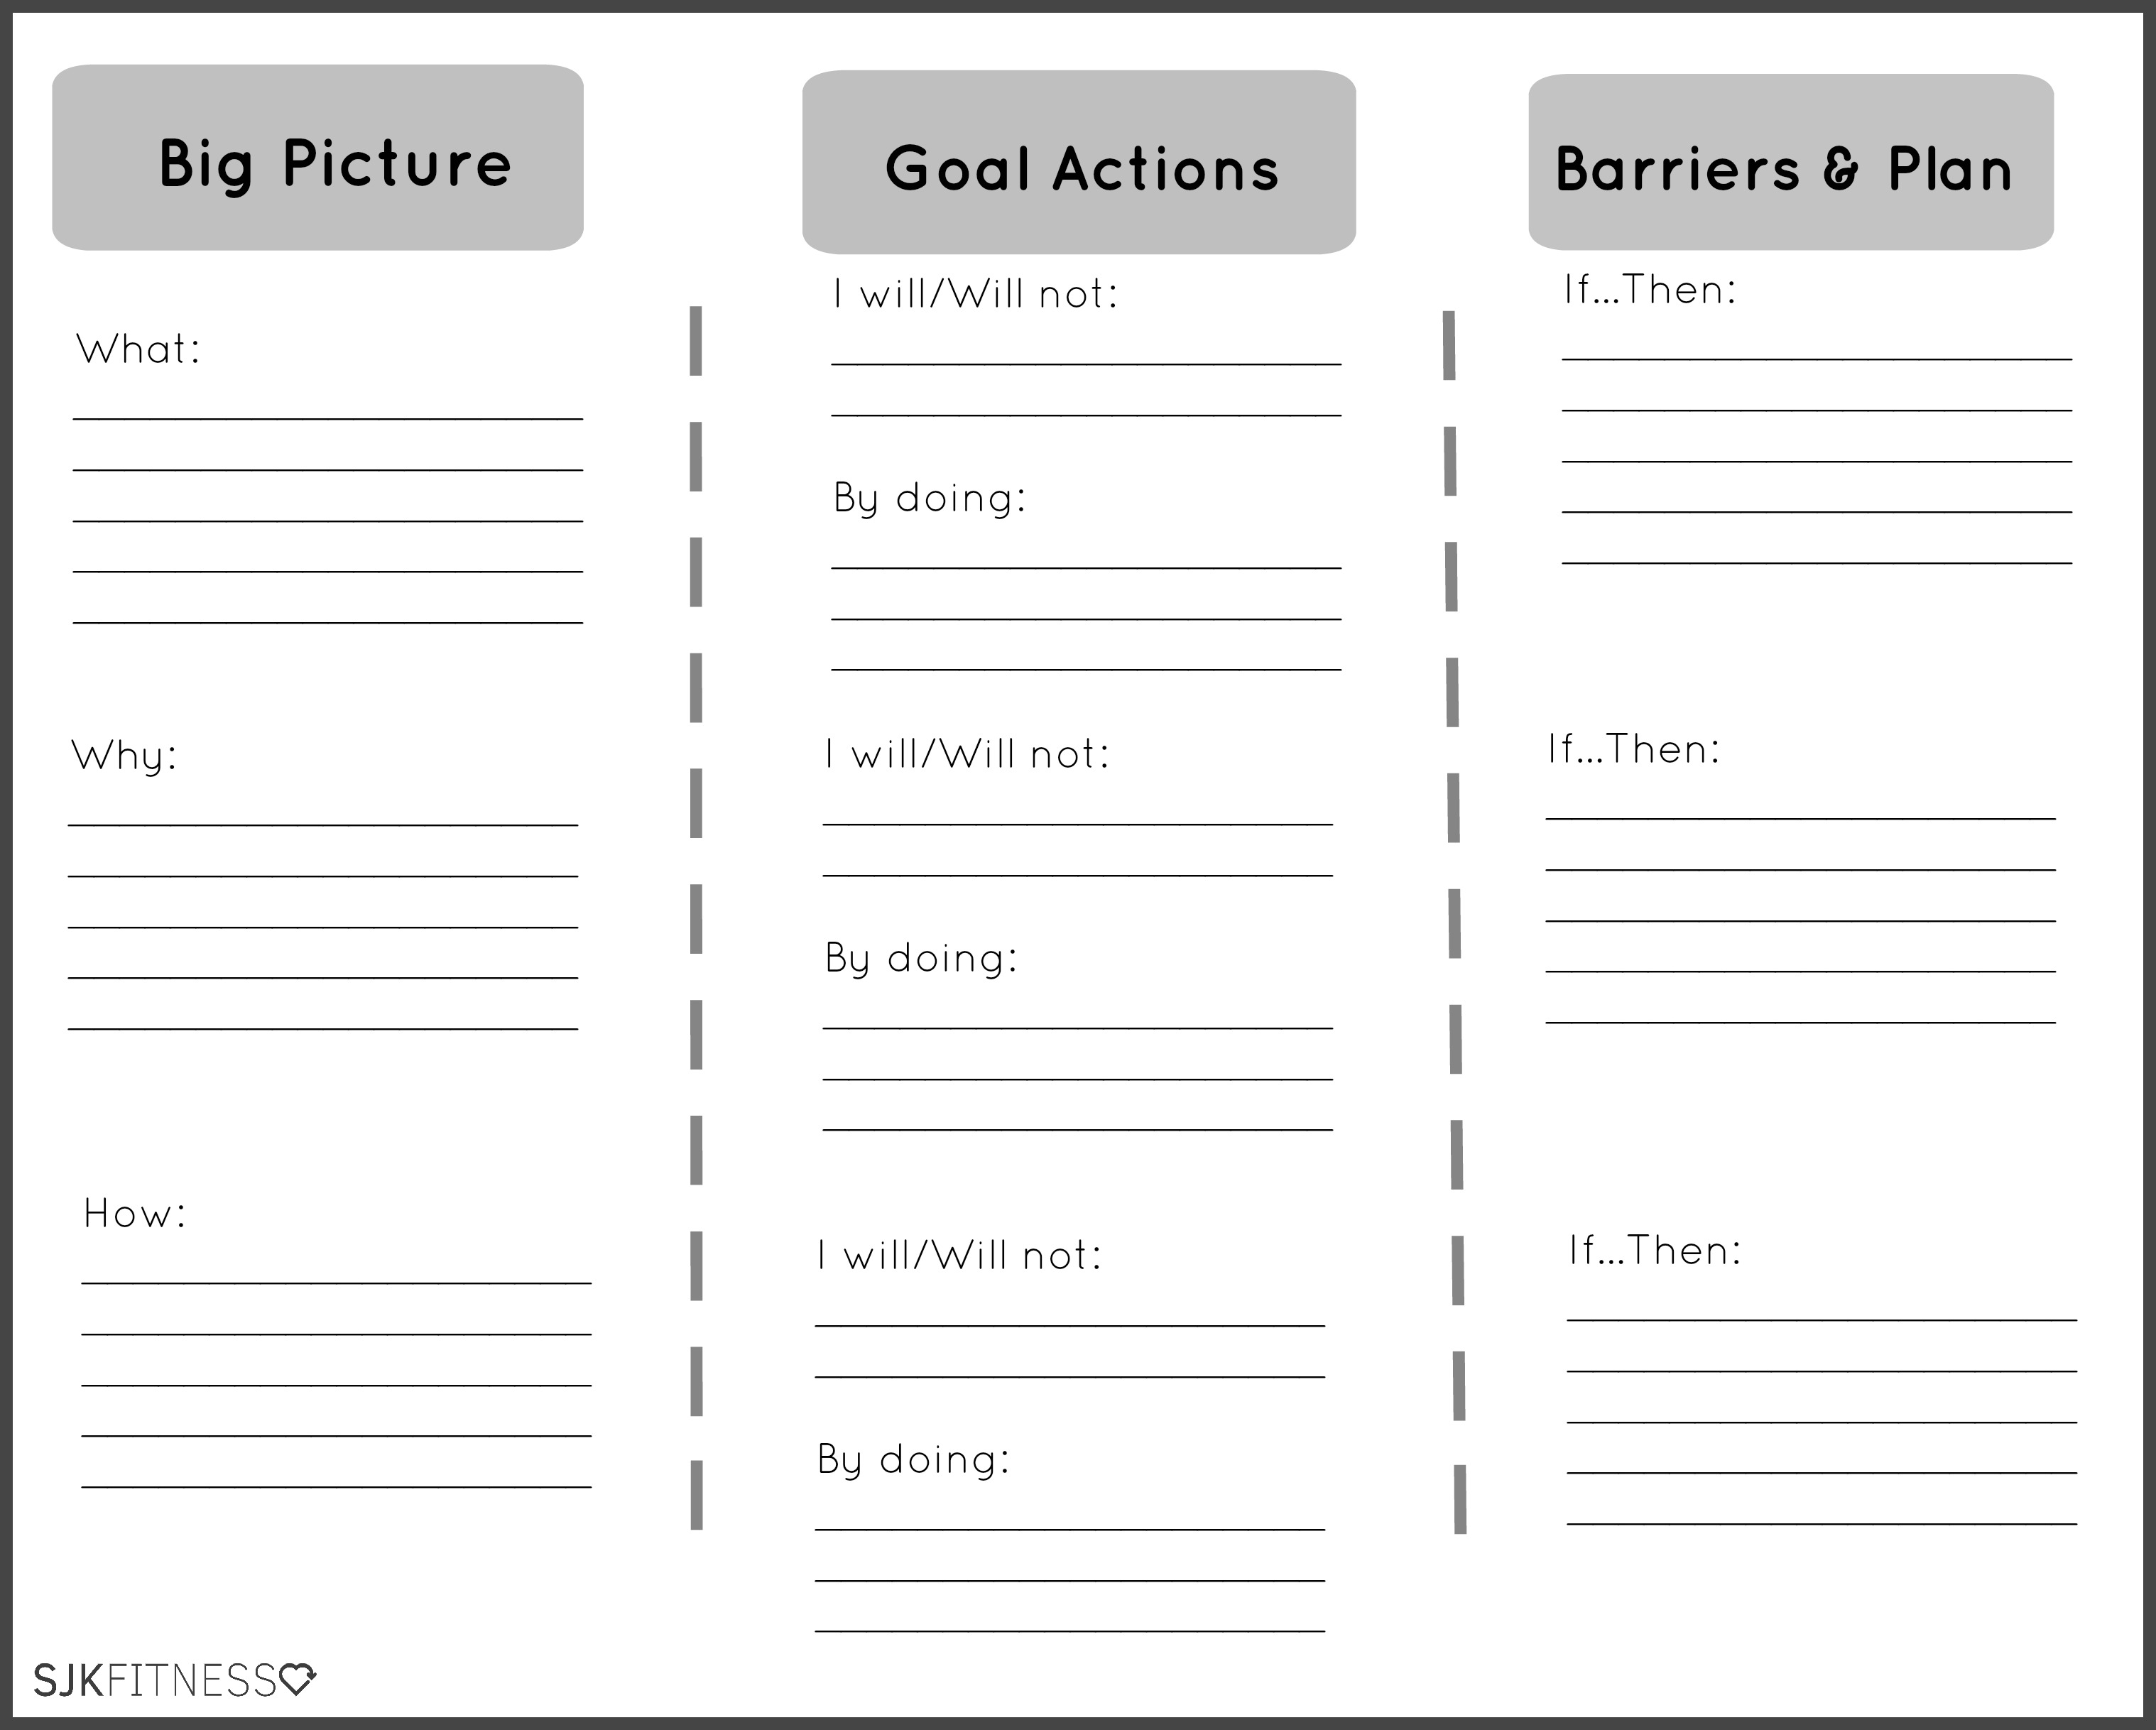 Mental Health Goals Template Most Effective Ways To